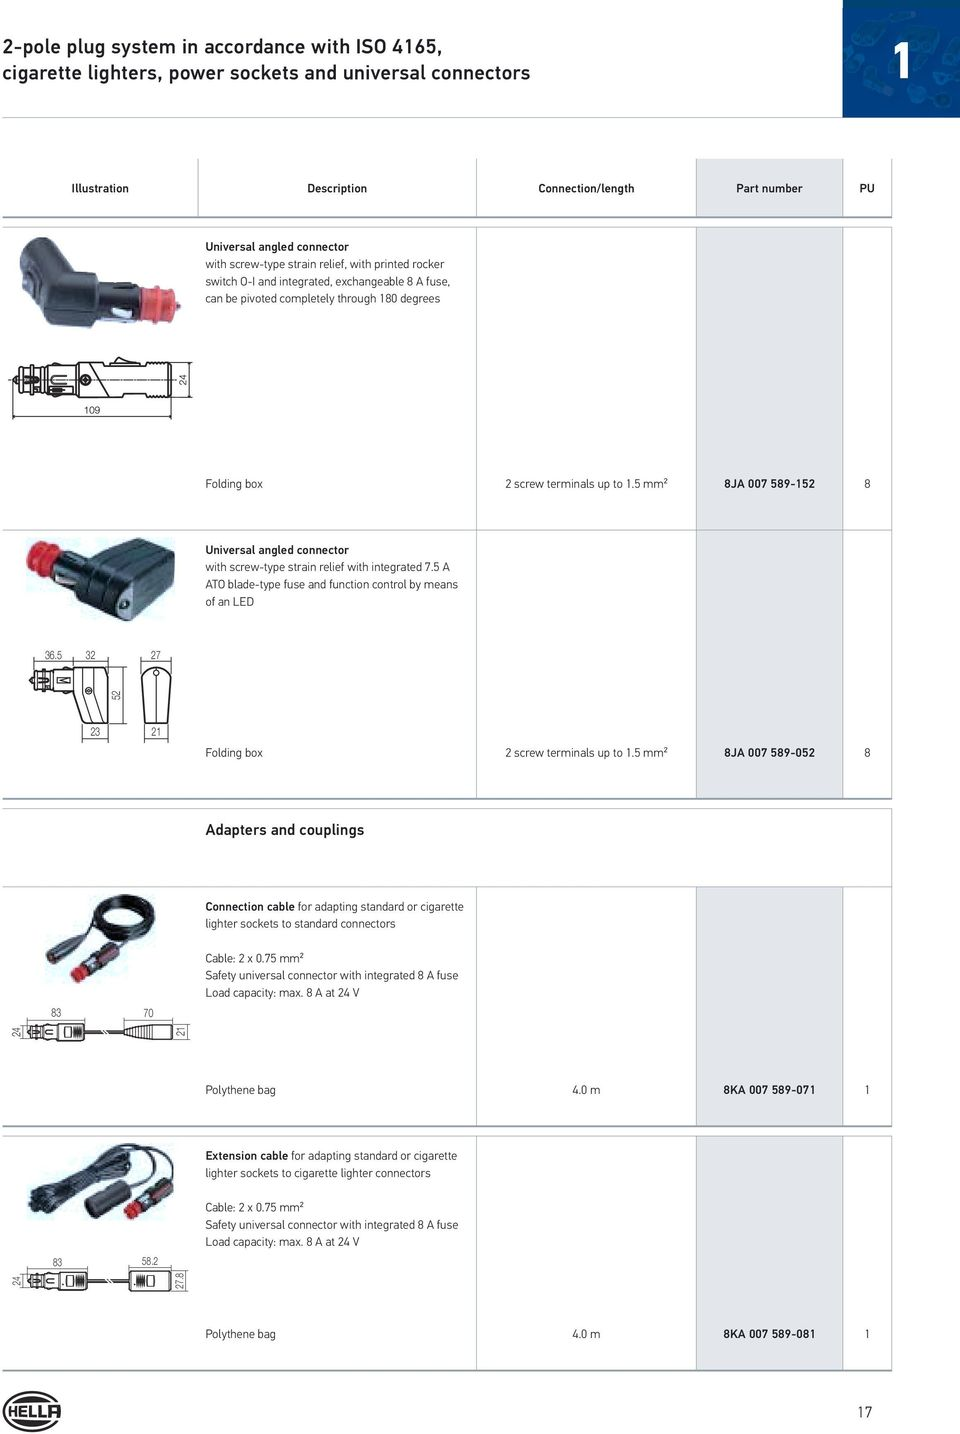 Electrical Plug Type Connections Pdf Boat Trailer Wiring Diagram On Terminal Number Function 7 Core Wire 5 Mm 8ja 007 589 152 8 Universal Angled Connector With Screw Strain